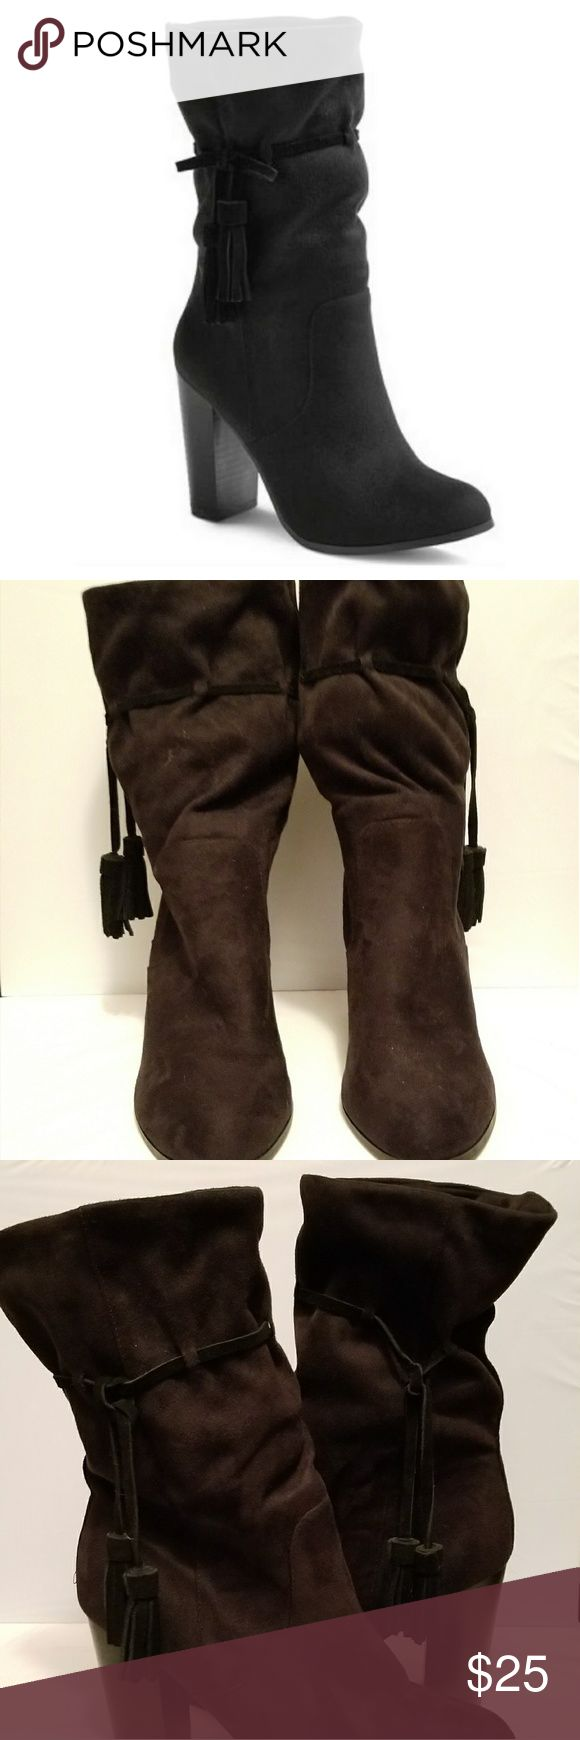 A+ by Aldo For Target Boots EUC-Worn Once $25 OBO 🛒 BUNDLE & SAVE A+ Designed by Aldo Shoes Heeled Boots